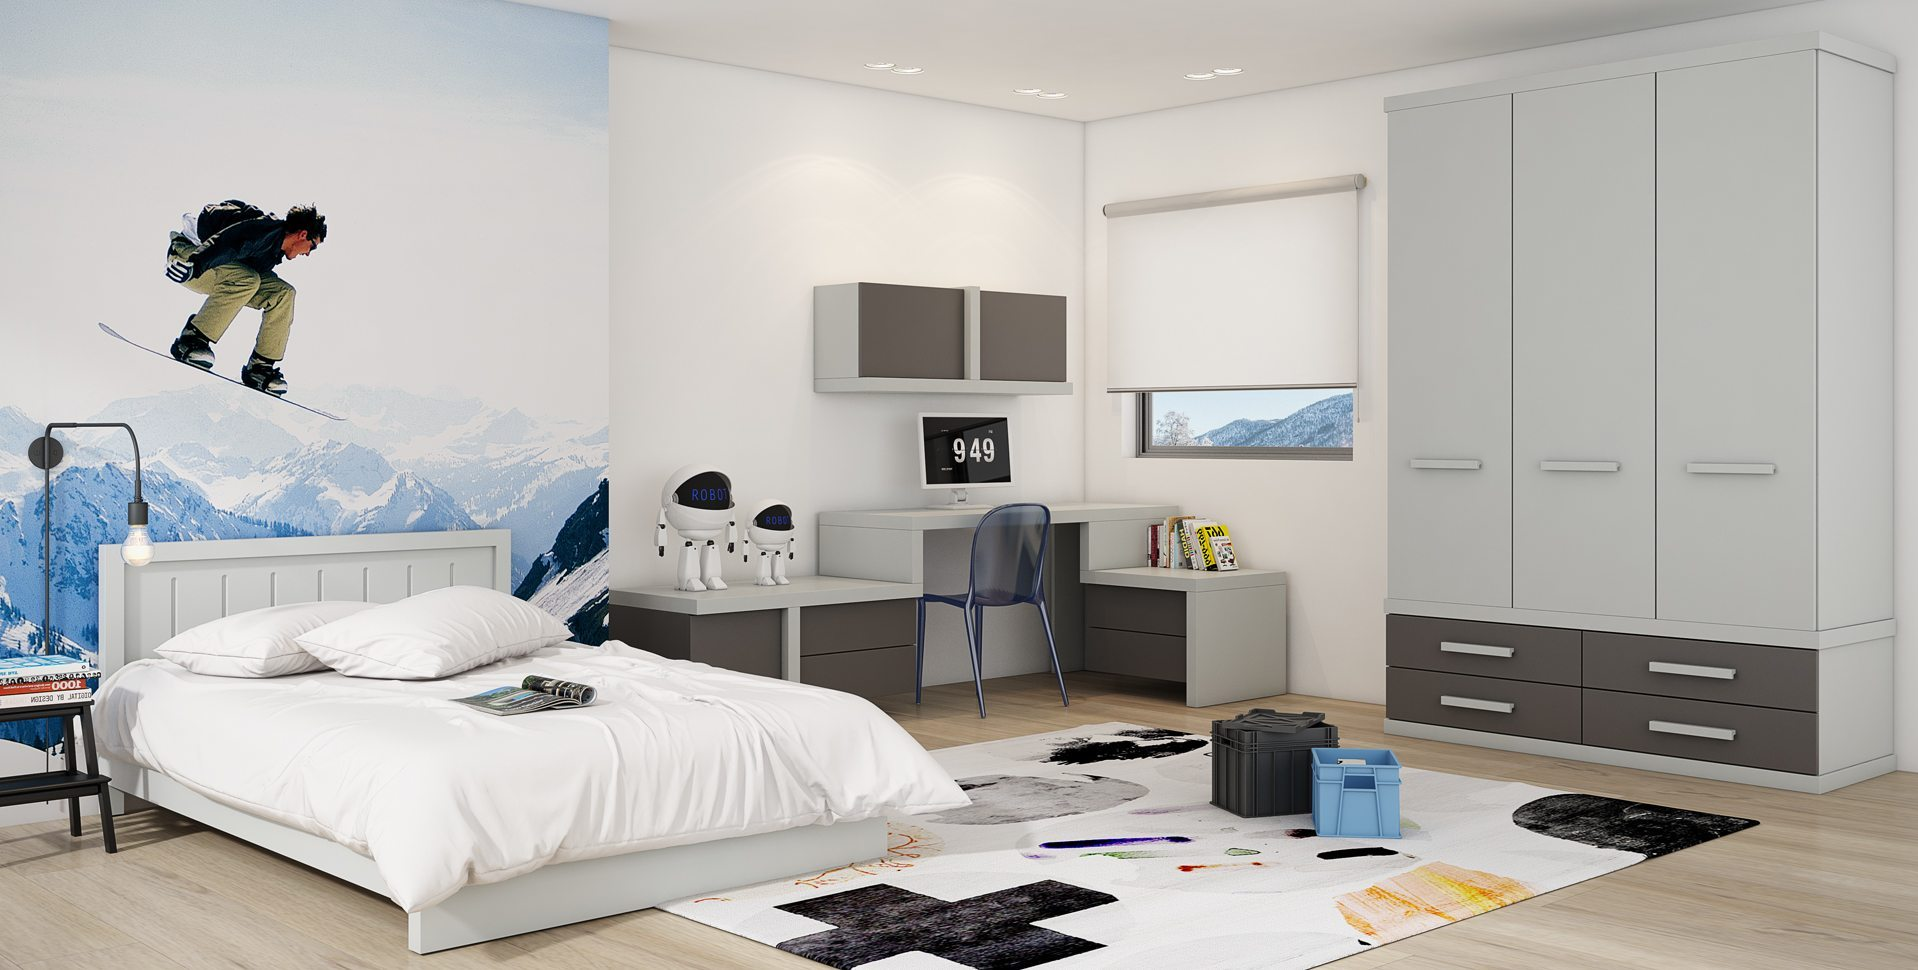 Product Visualization: Teen room, Furniture by Barzilay